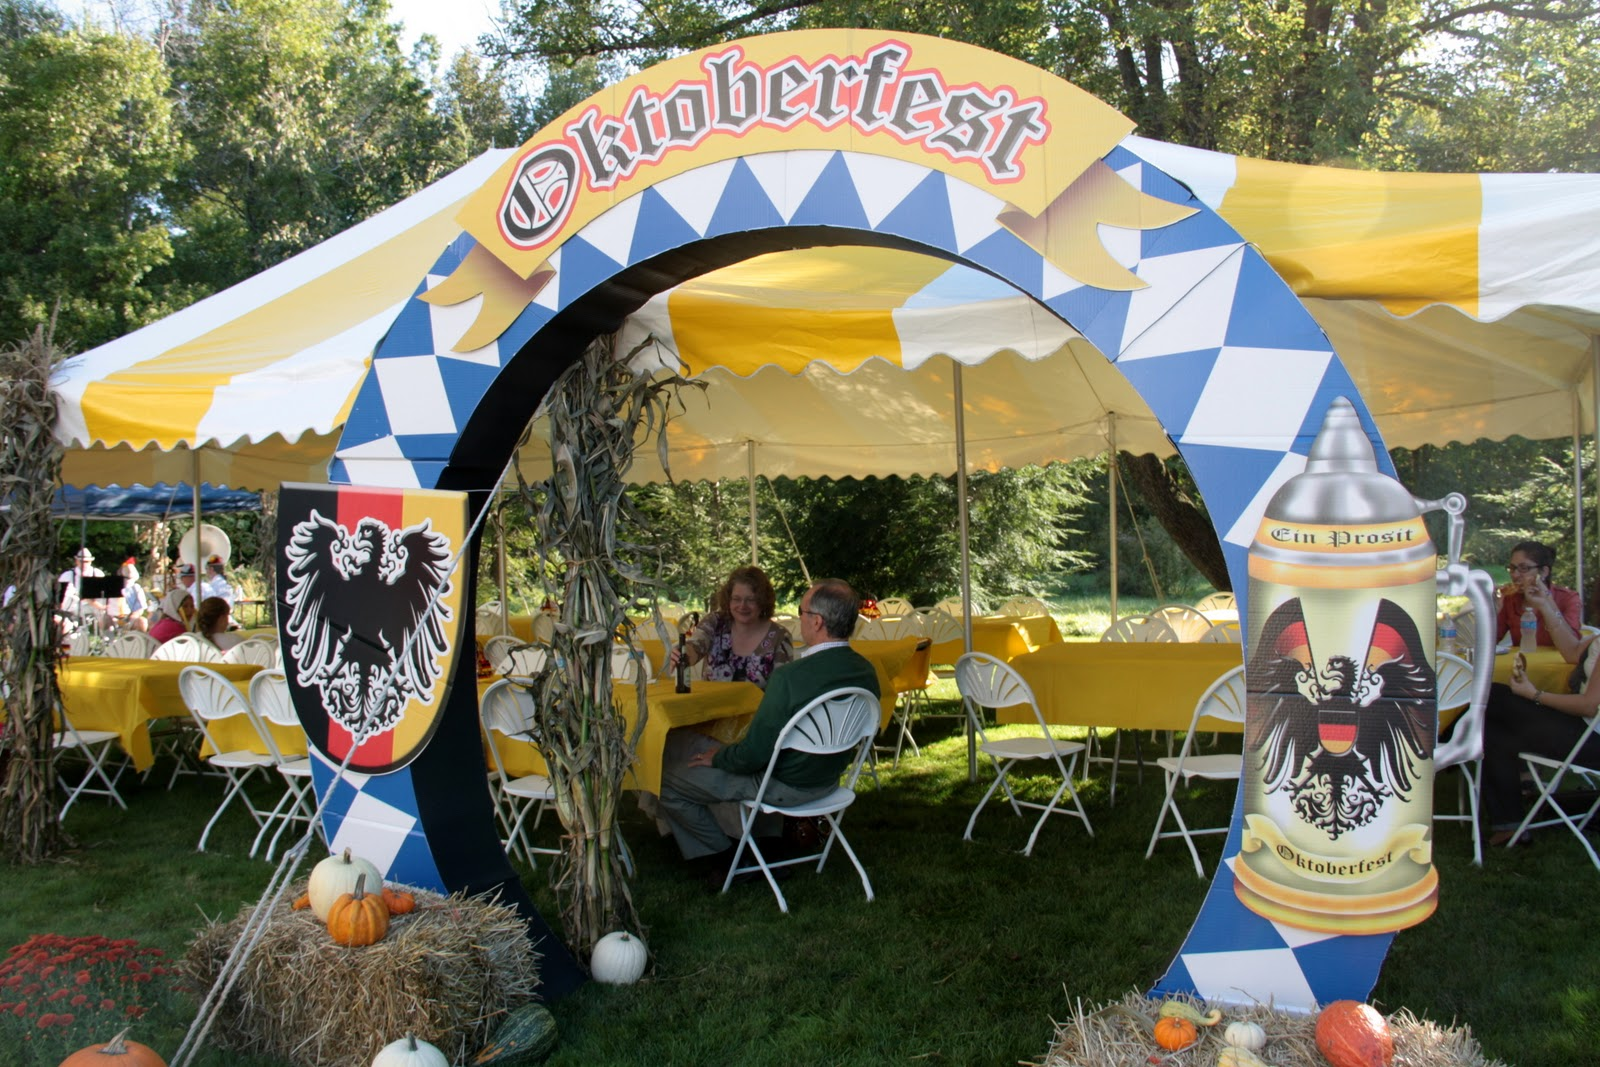 On Saturday I Attended An Oktoberfest At A Friends House They Went All Out For The Party